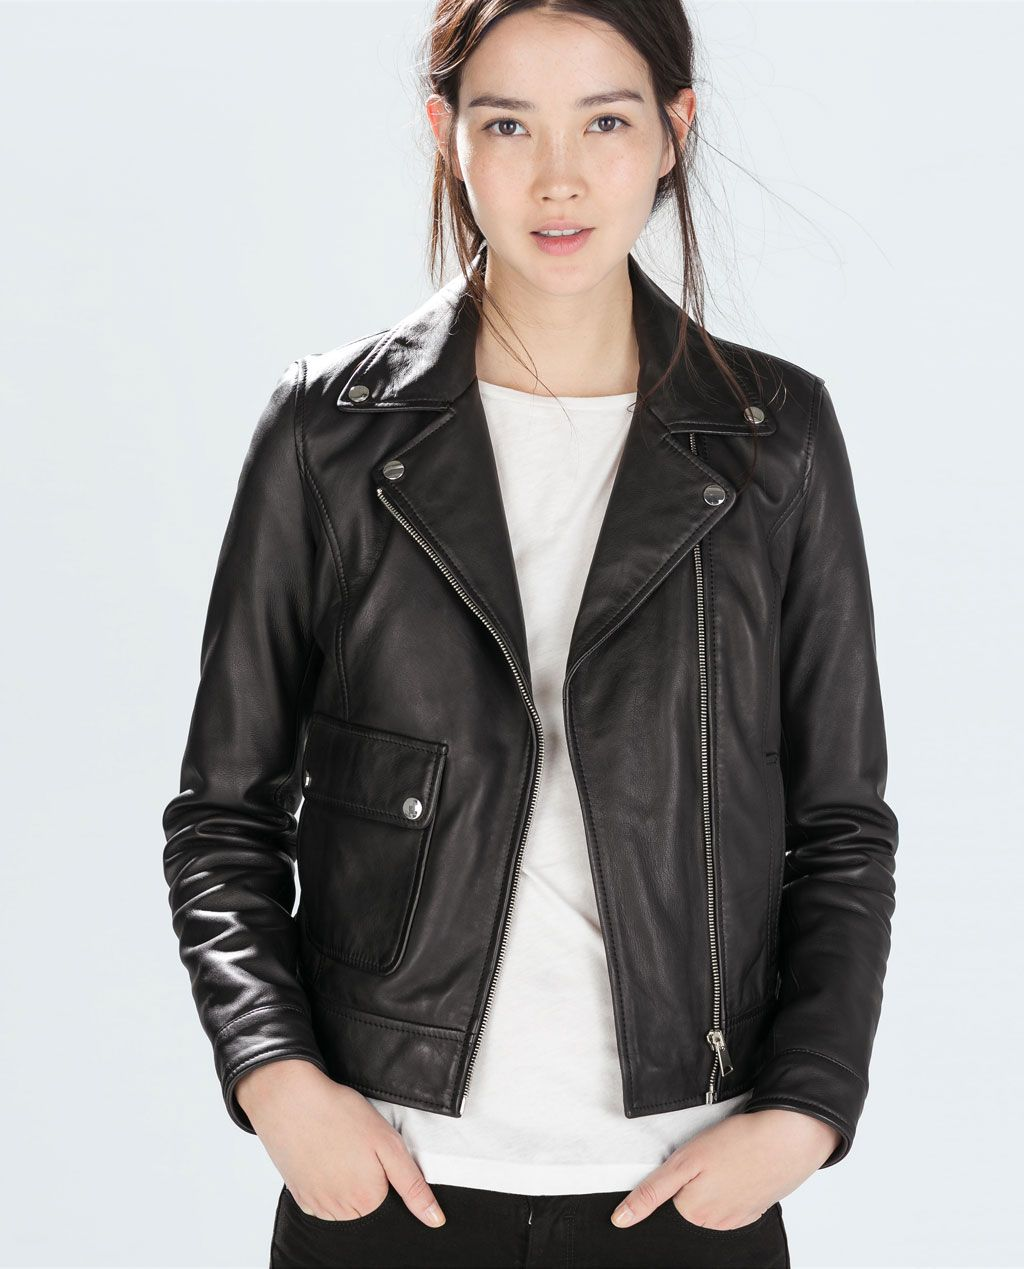 Image 4 of LEATHER BIKER JACKET from Zara (On SALE for